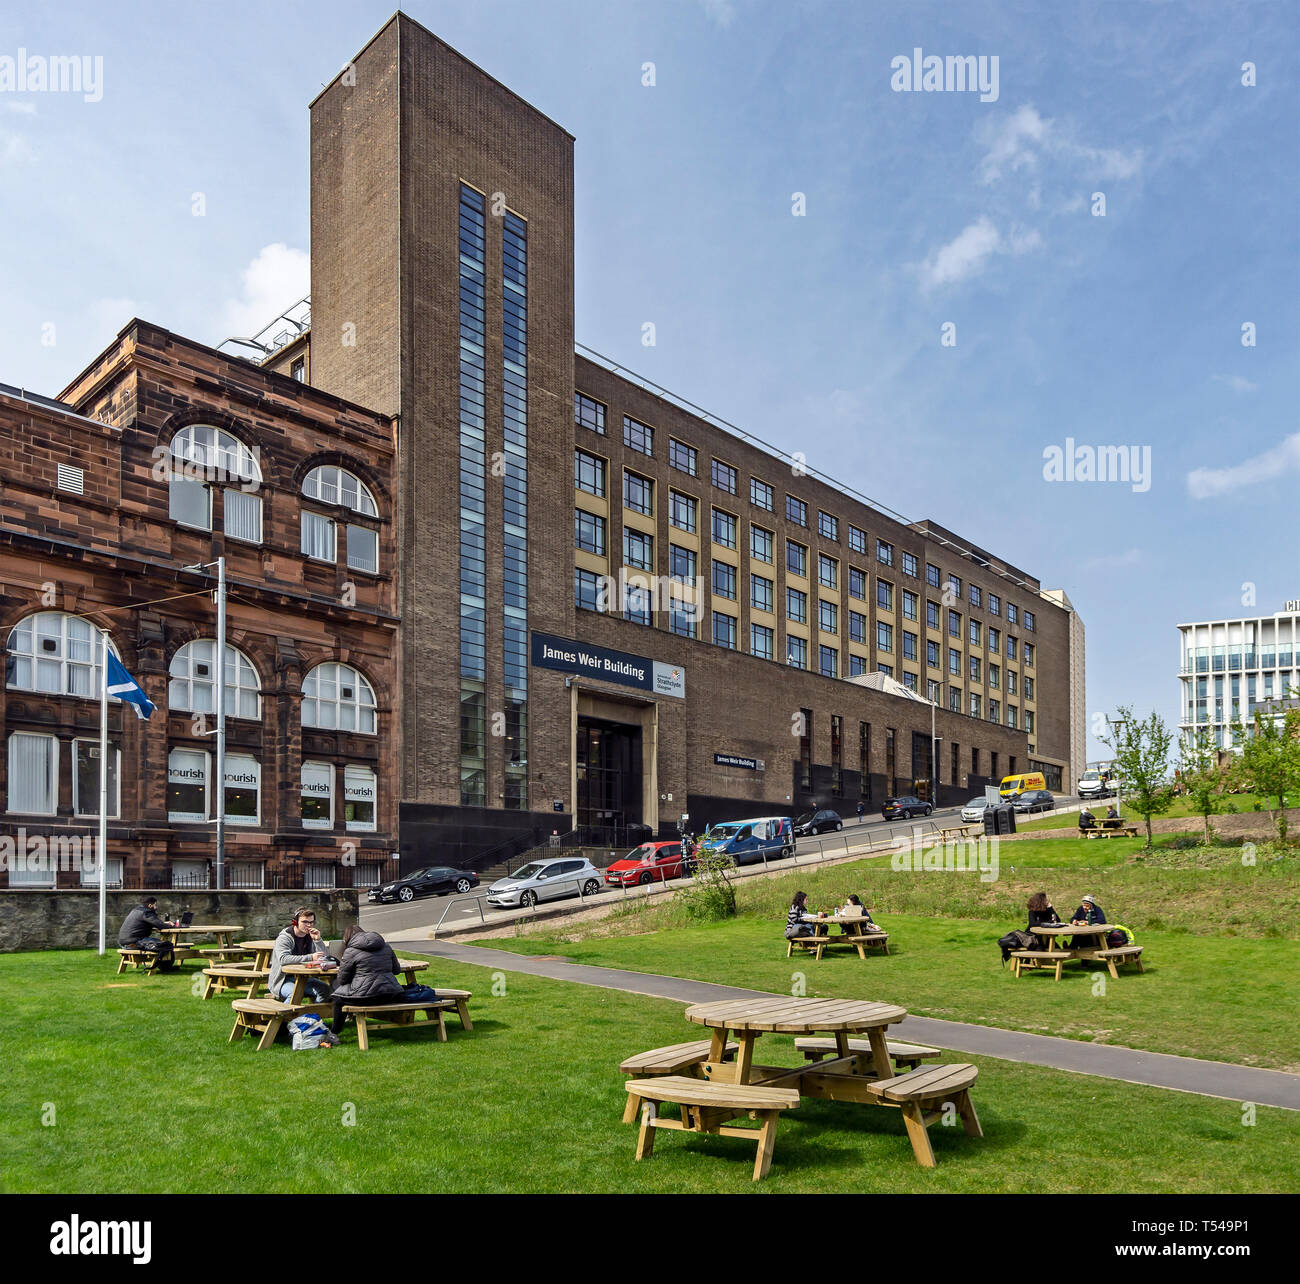 The University of Strathclyde Richmont Street Glasgow Scotland UK with the James Weir building in Montrose Street behind Rottenrow Gardens Stock Photo